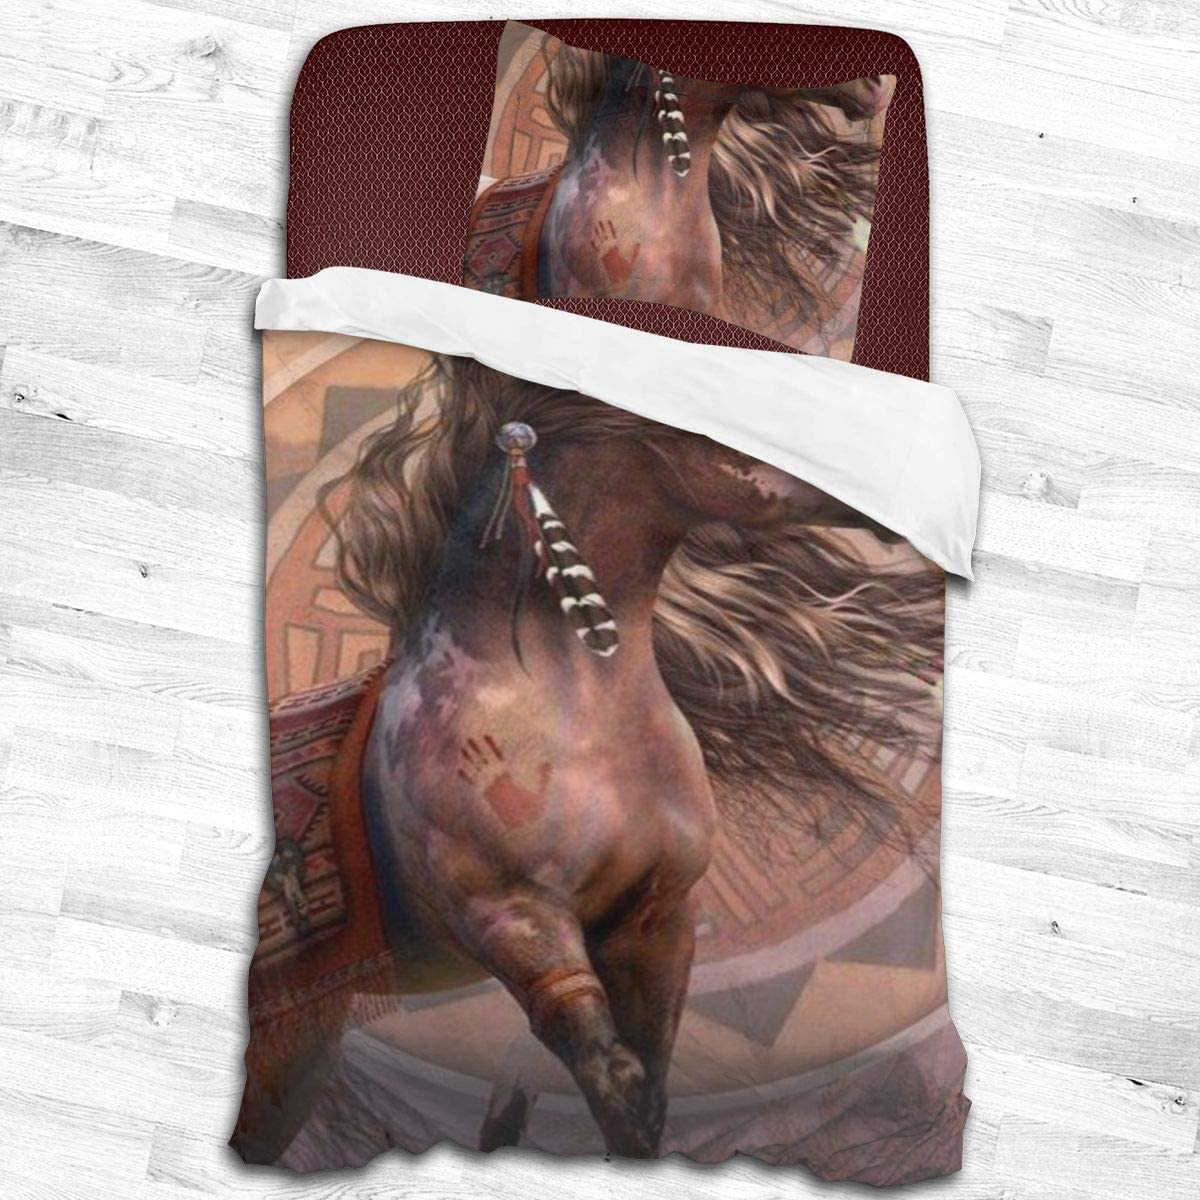 2 Pieces Bedding Duvet Cover Set Native American Indian Horse Coverlet Duvet Cover 53 x 79 Inch Home Collection Pillowcase Pillow Shams Lightweight Comforter Bedspread Set For Teens Kids Children